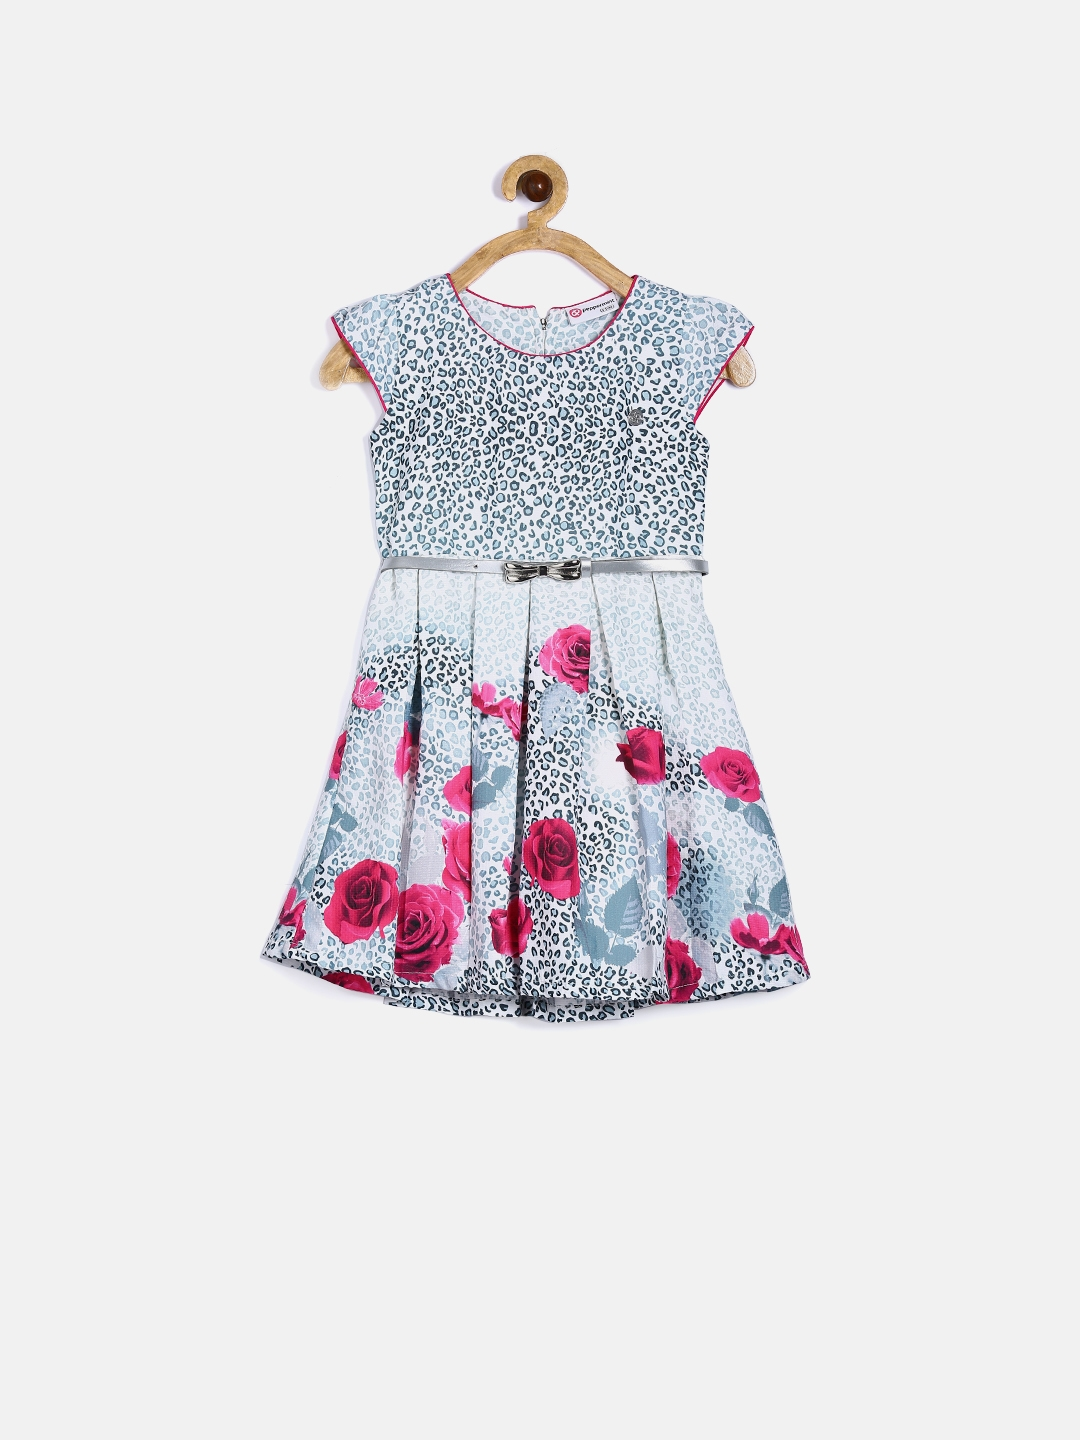 781cbe382c5 Buy Peppermint Girls White   Pink Floral   Animal Print Fit   Flare ...